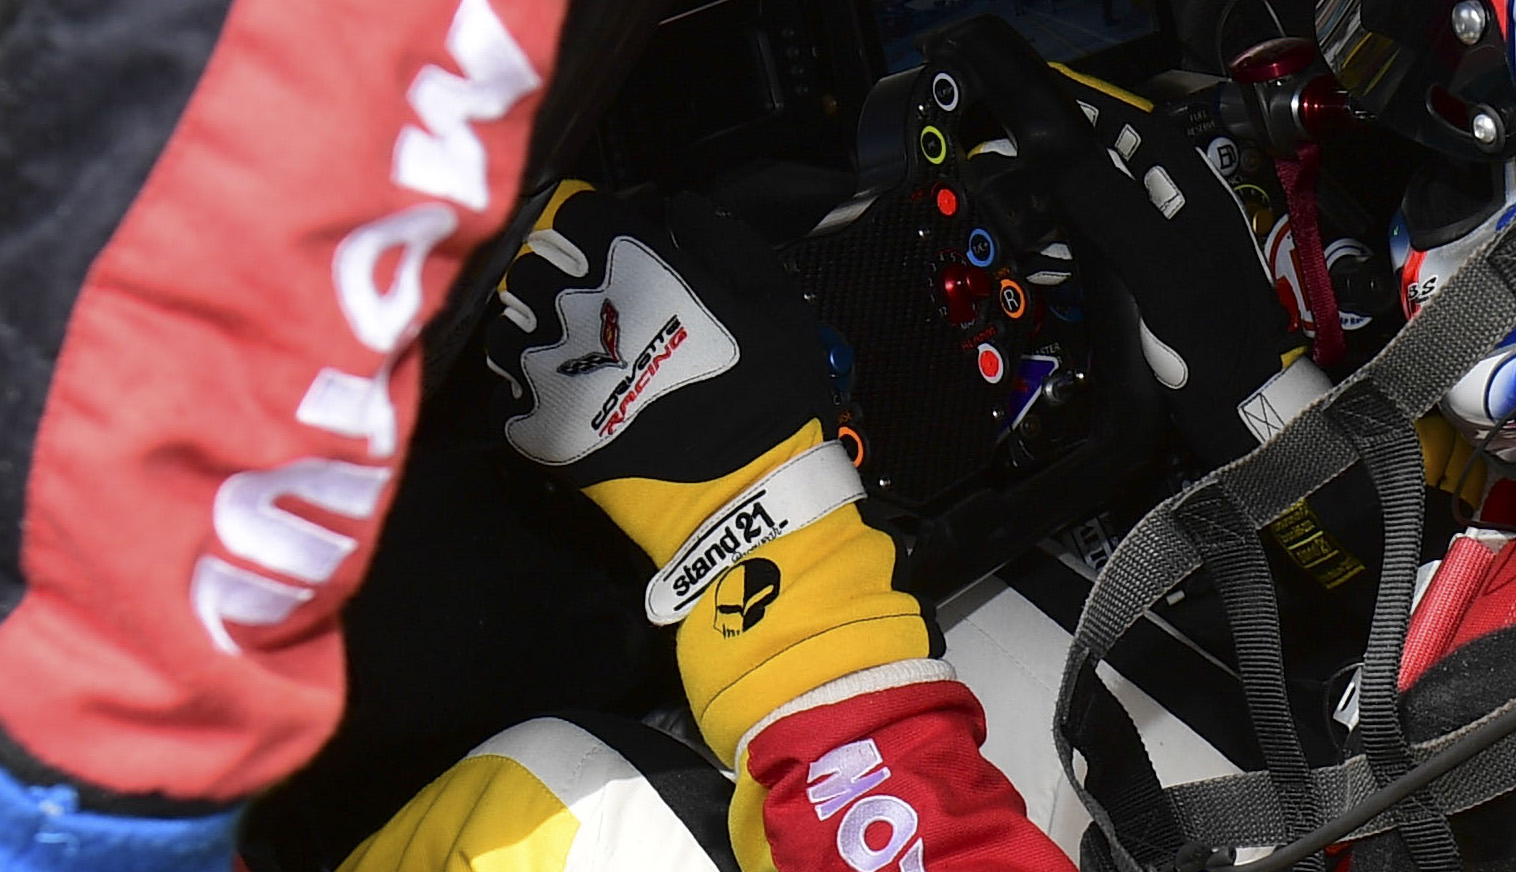 Corvette Daytona gloves - ©Vision Sport Agency